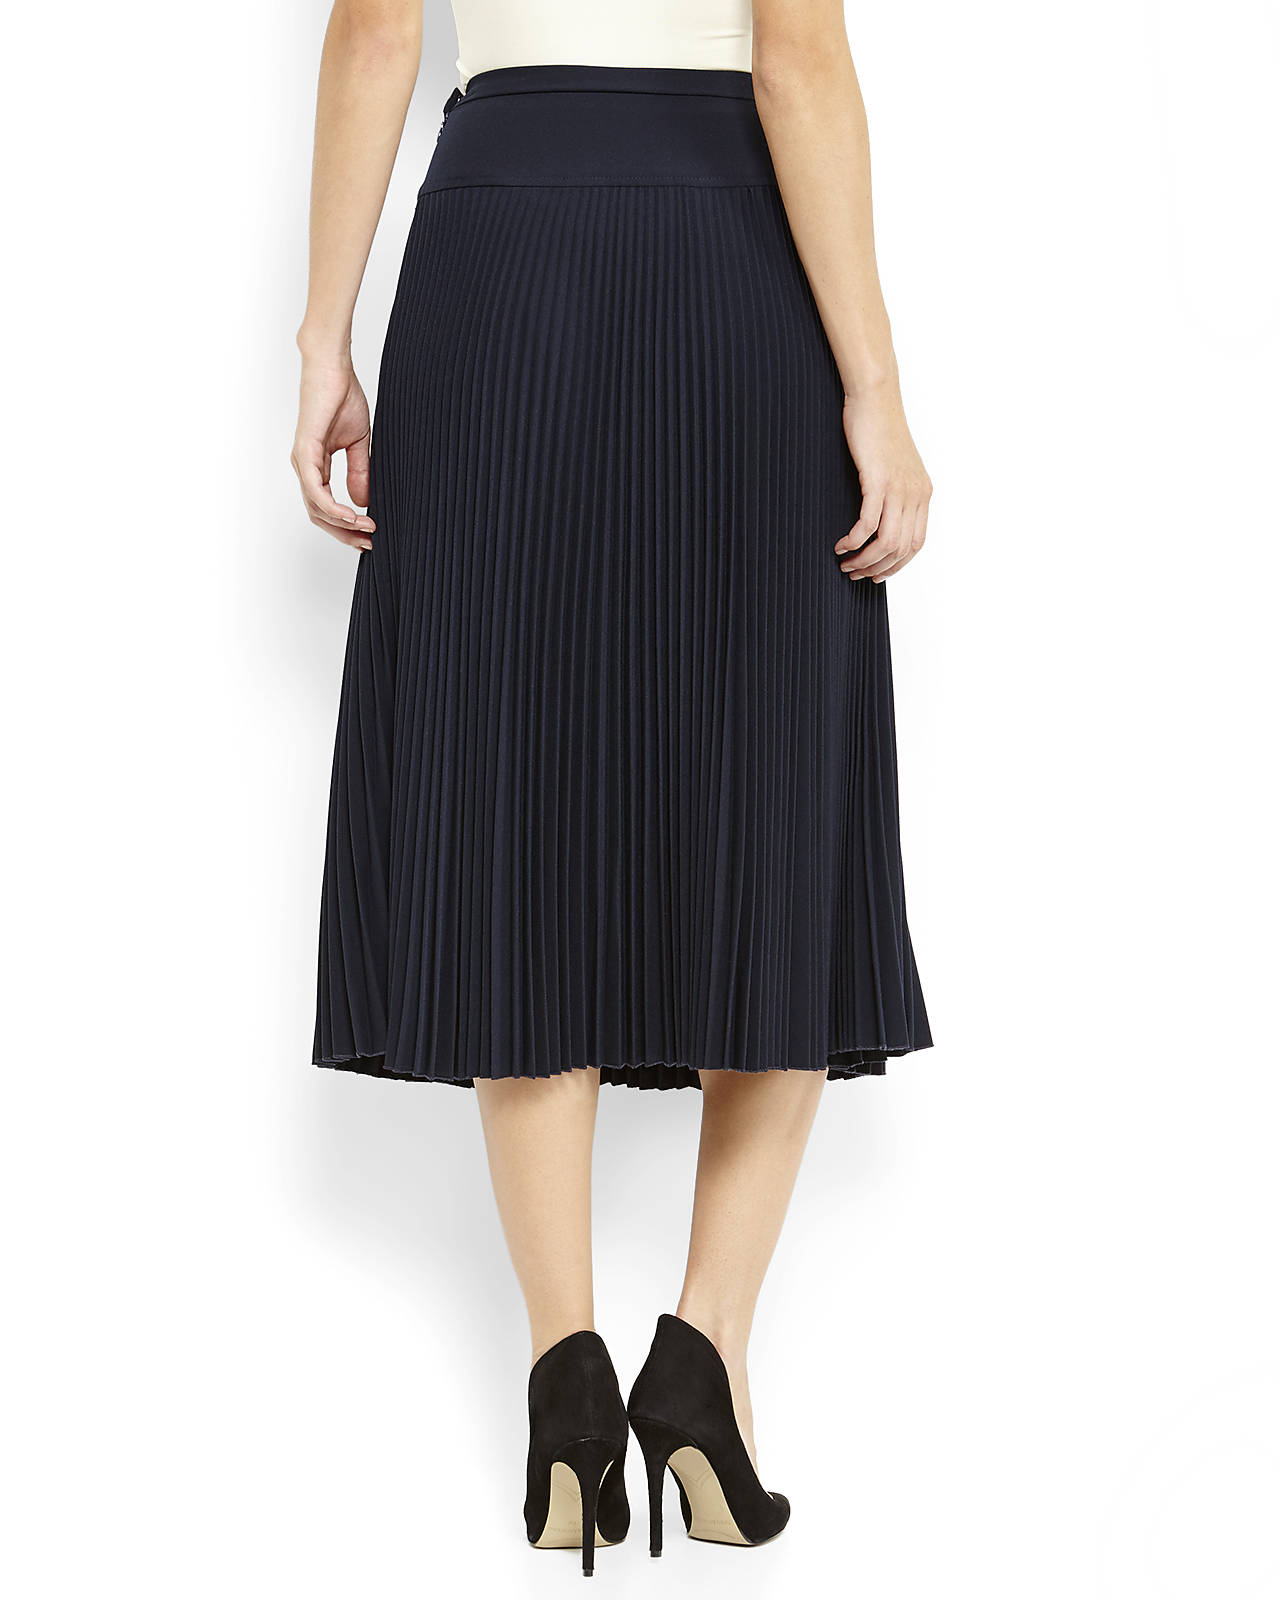 PANIZ Pleated Midi Skirt | Shop Women's Clothing & Accessories | Century 21 Department Store